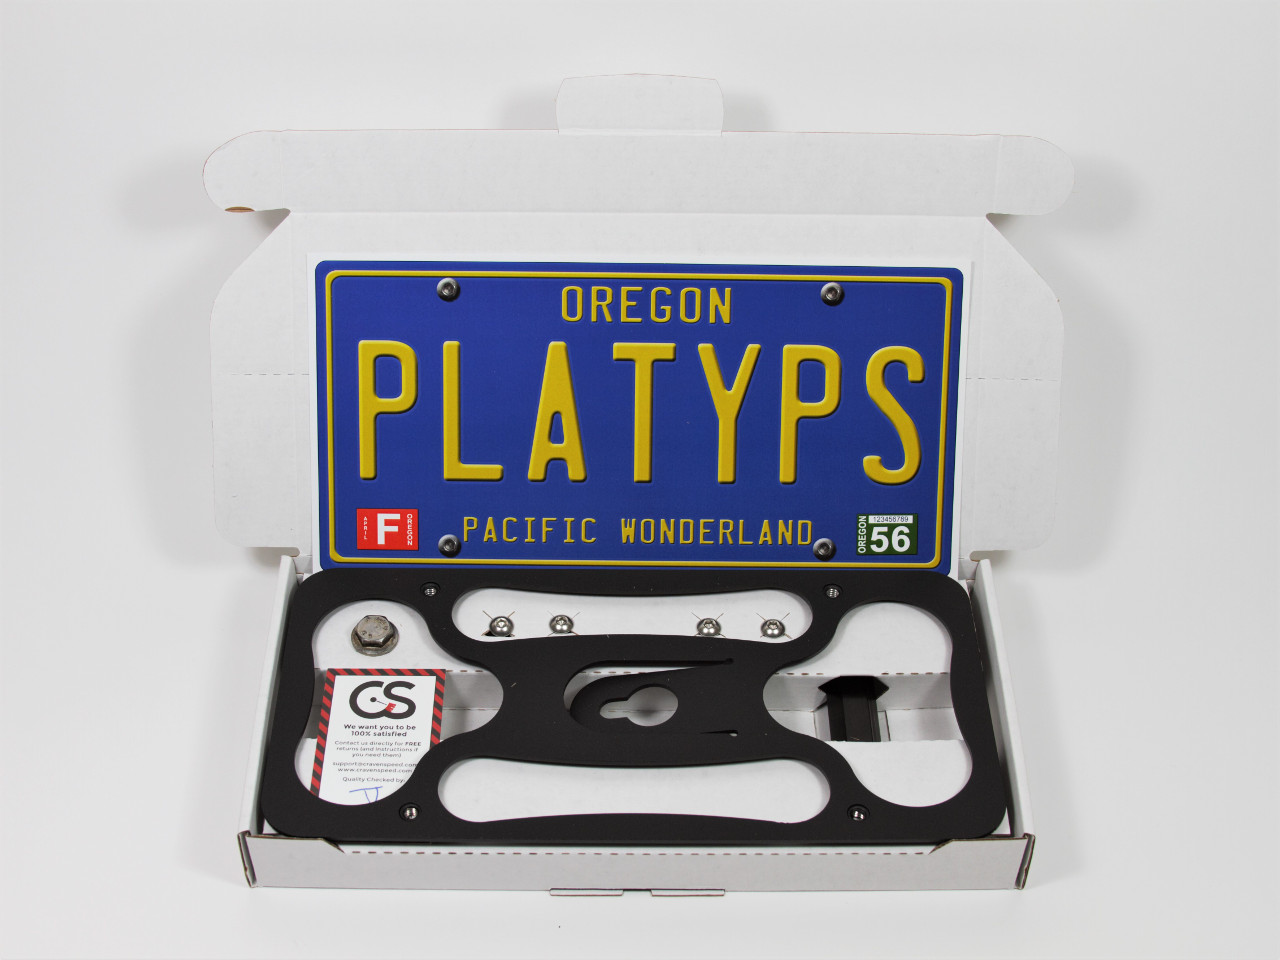 The CravenSpeed Platypus License Plate Mount box.